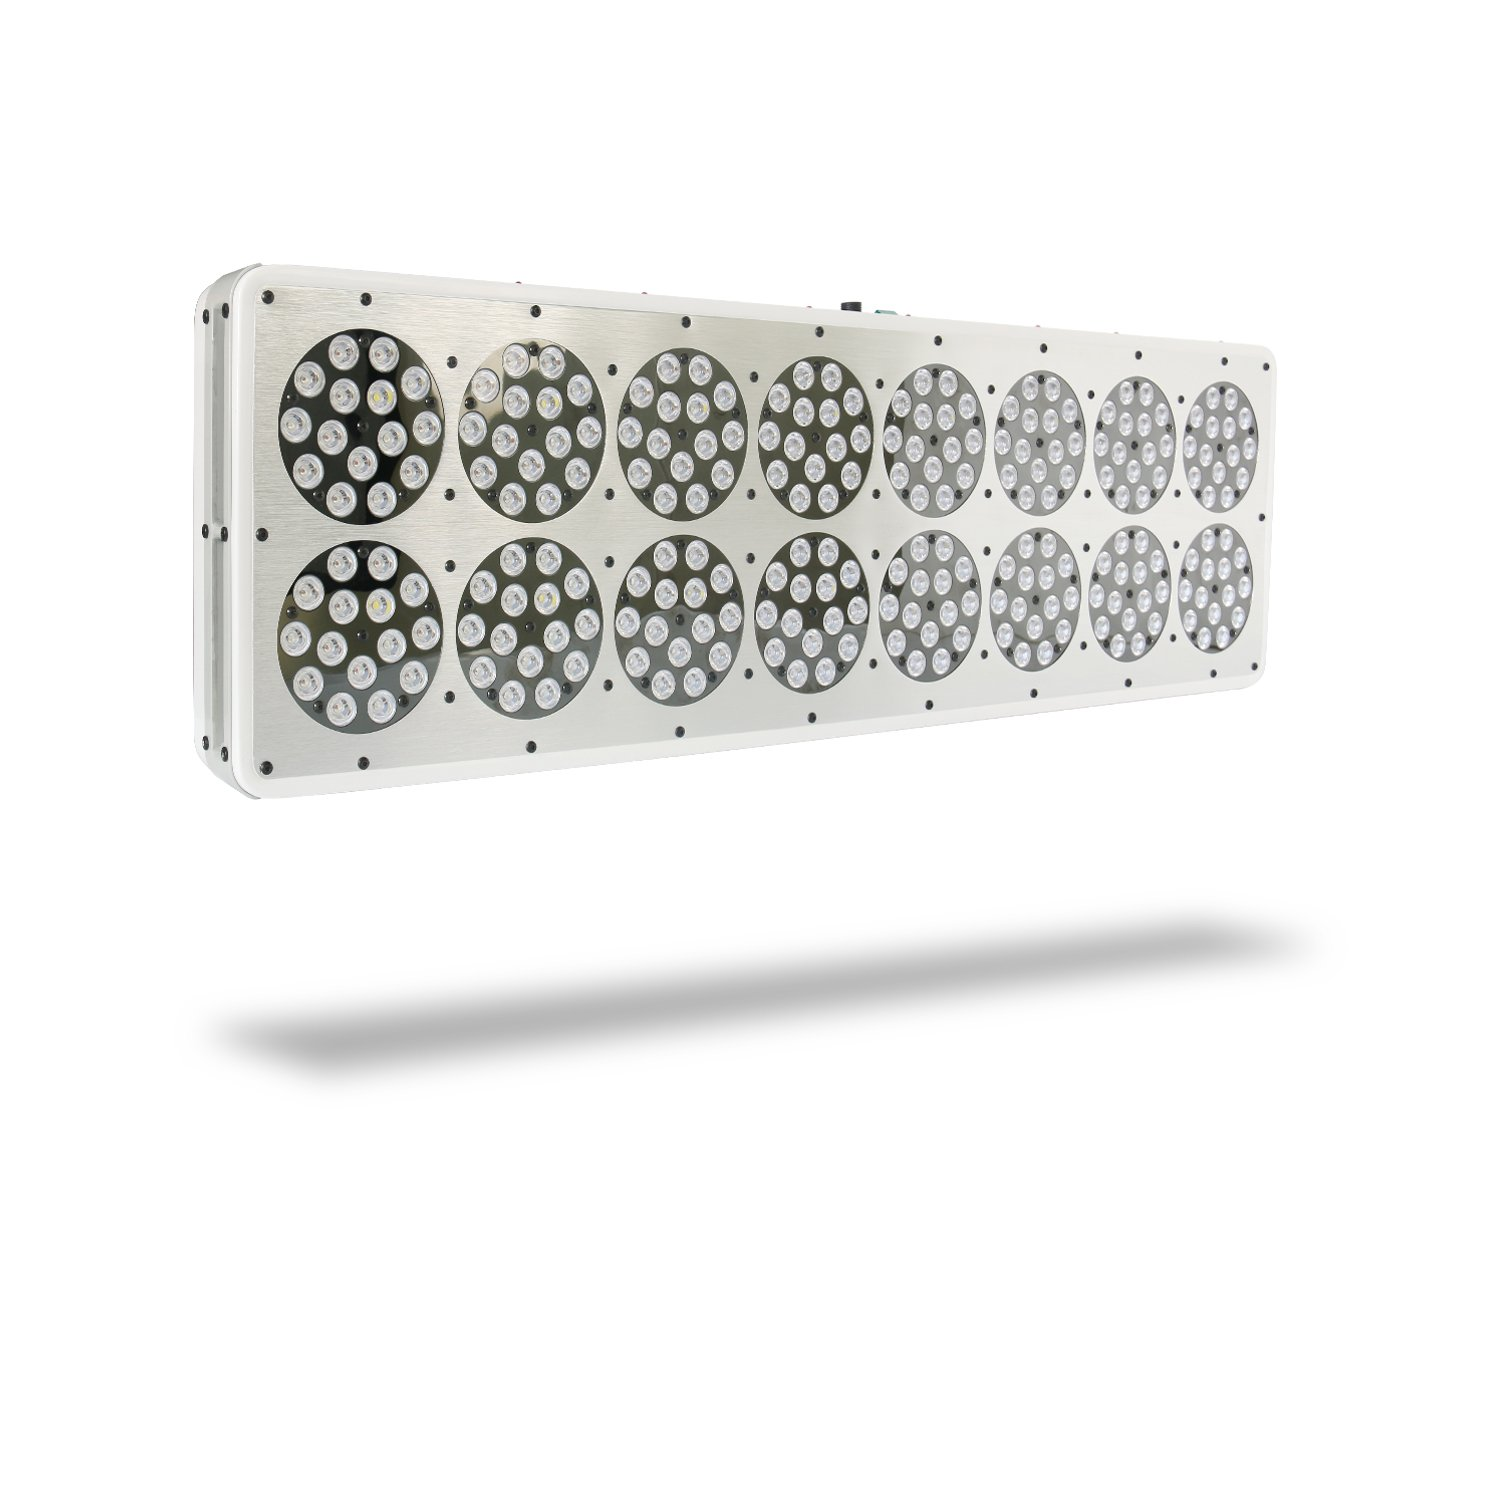 High Power Plant Grow Light, MAGZO A16 Full Spectrum LED Grow Lights with 3W Chips for Greenhouse Plants Marijuana Bonsai (MAGZO A16 550W) by MAGZO (Image #5)